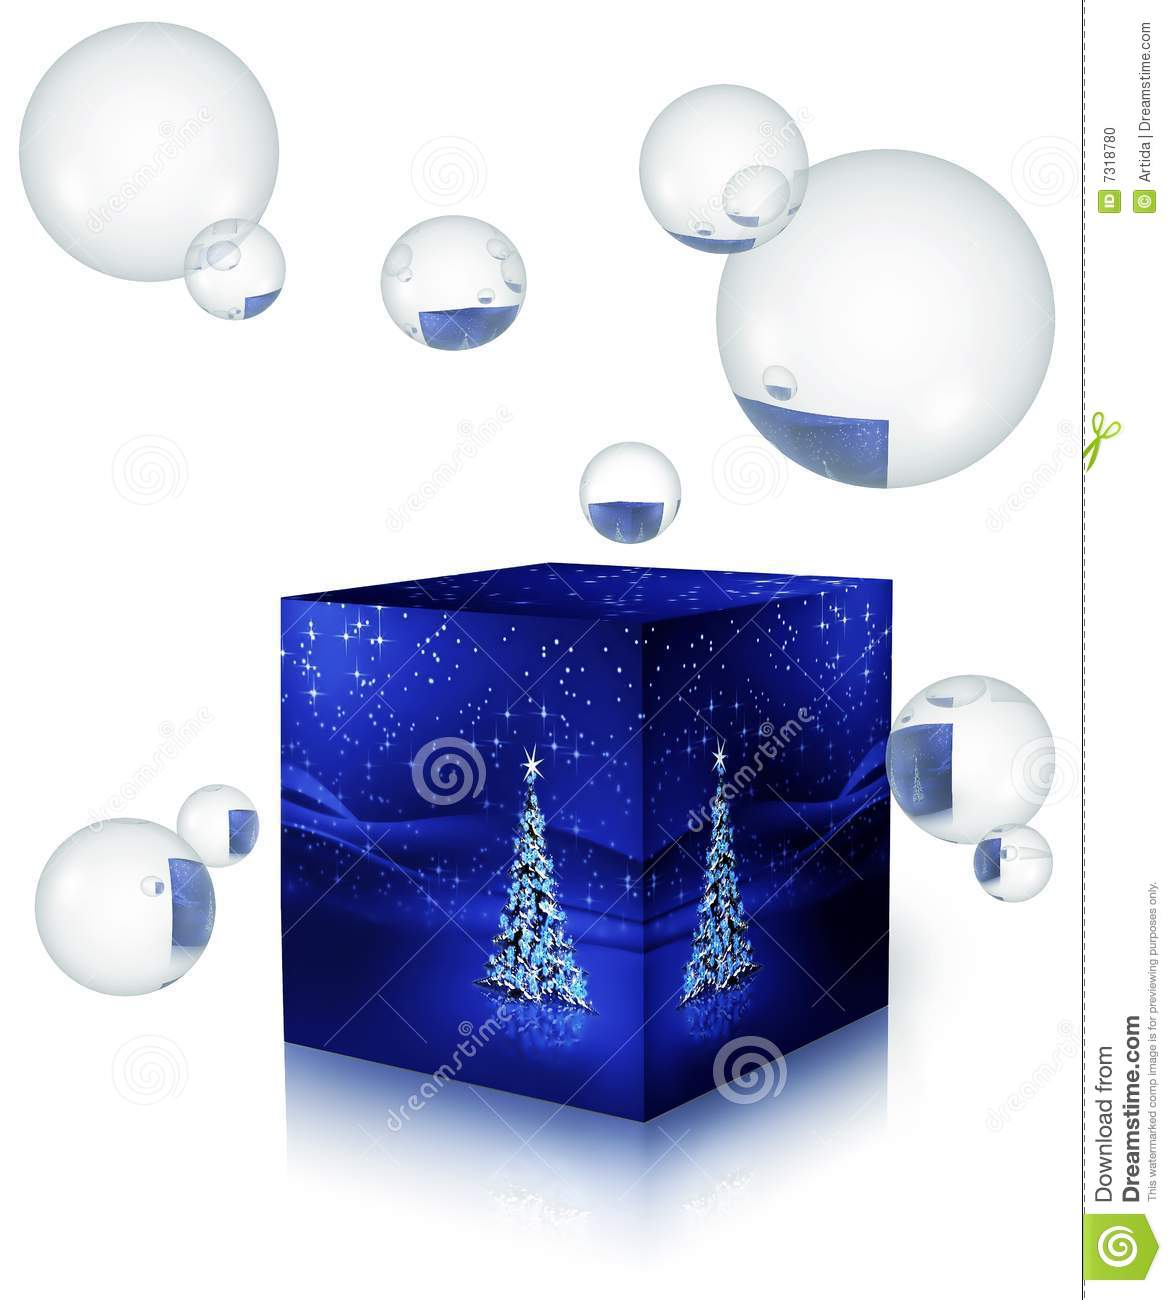 Christmas tree in a box with bubbles stock photo image for Christmas tree in a box